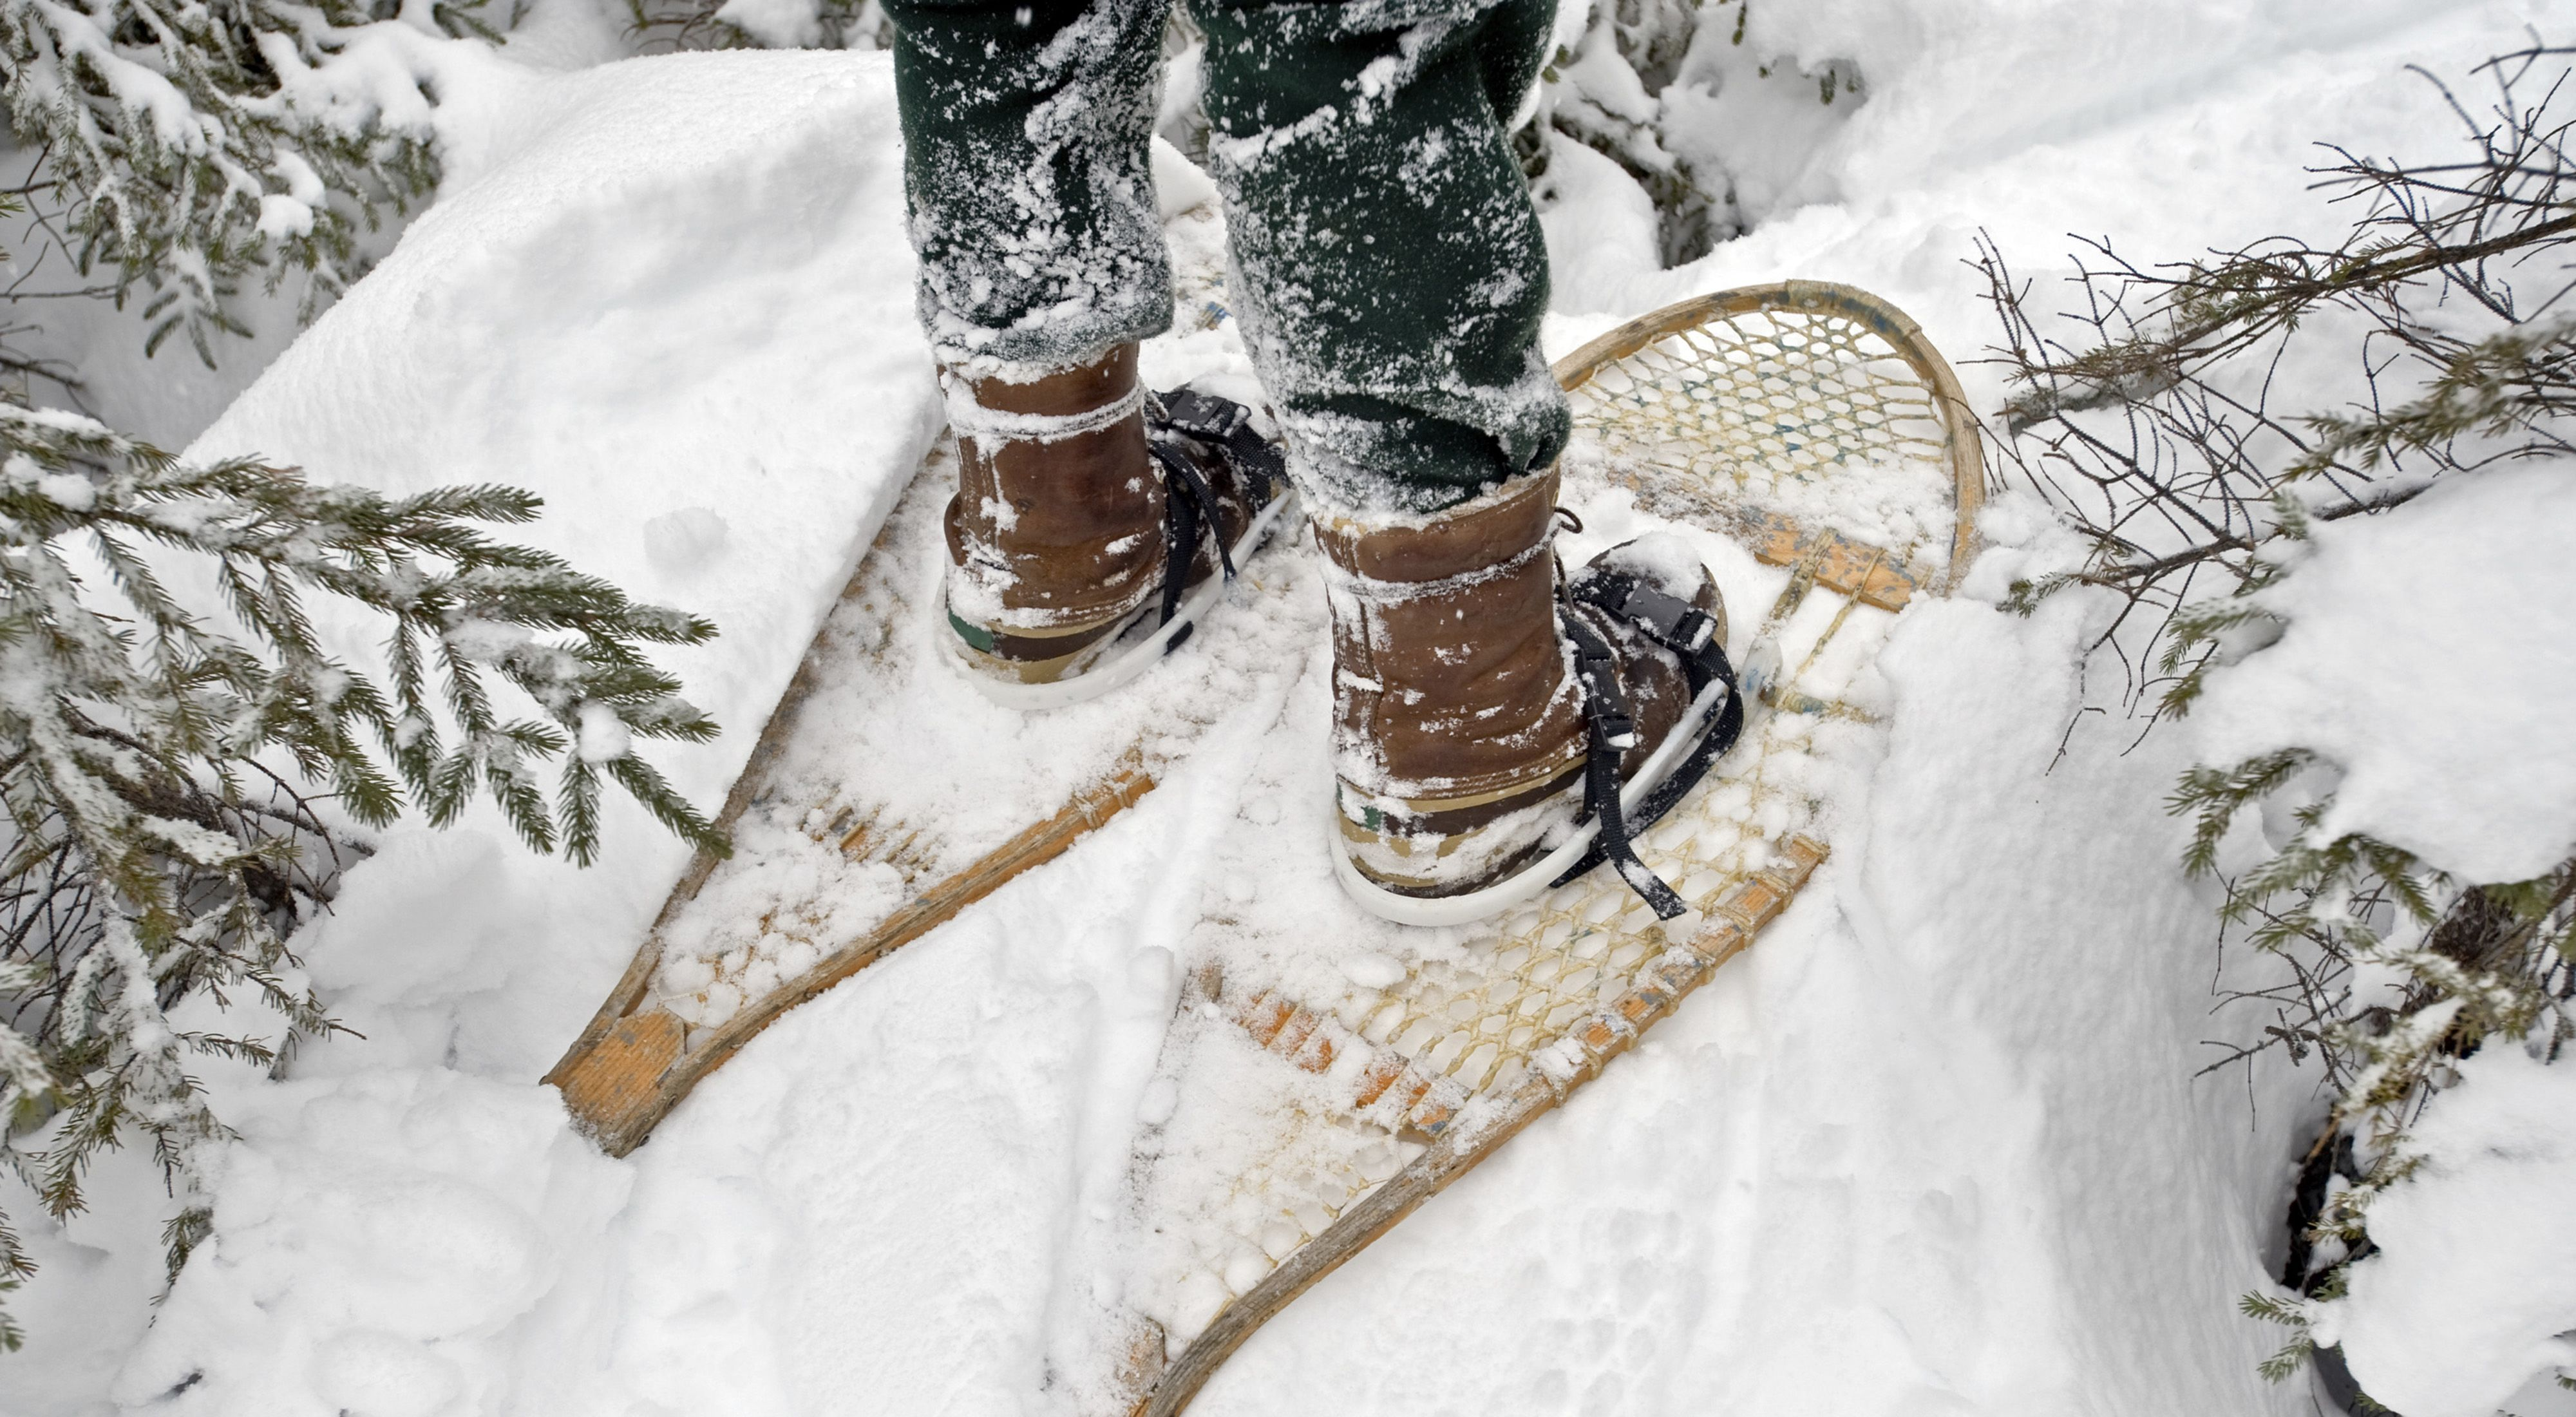 A close-up of snowy boots and snowshoes on a trail.